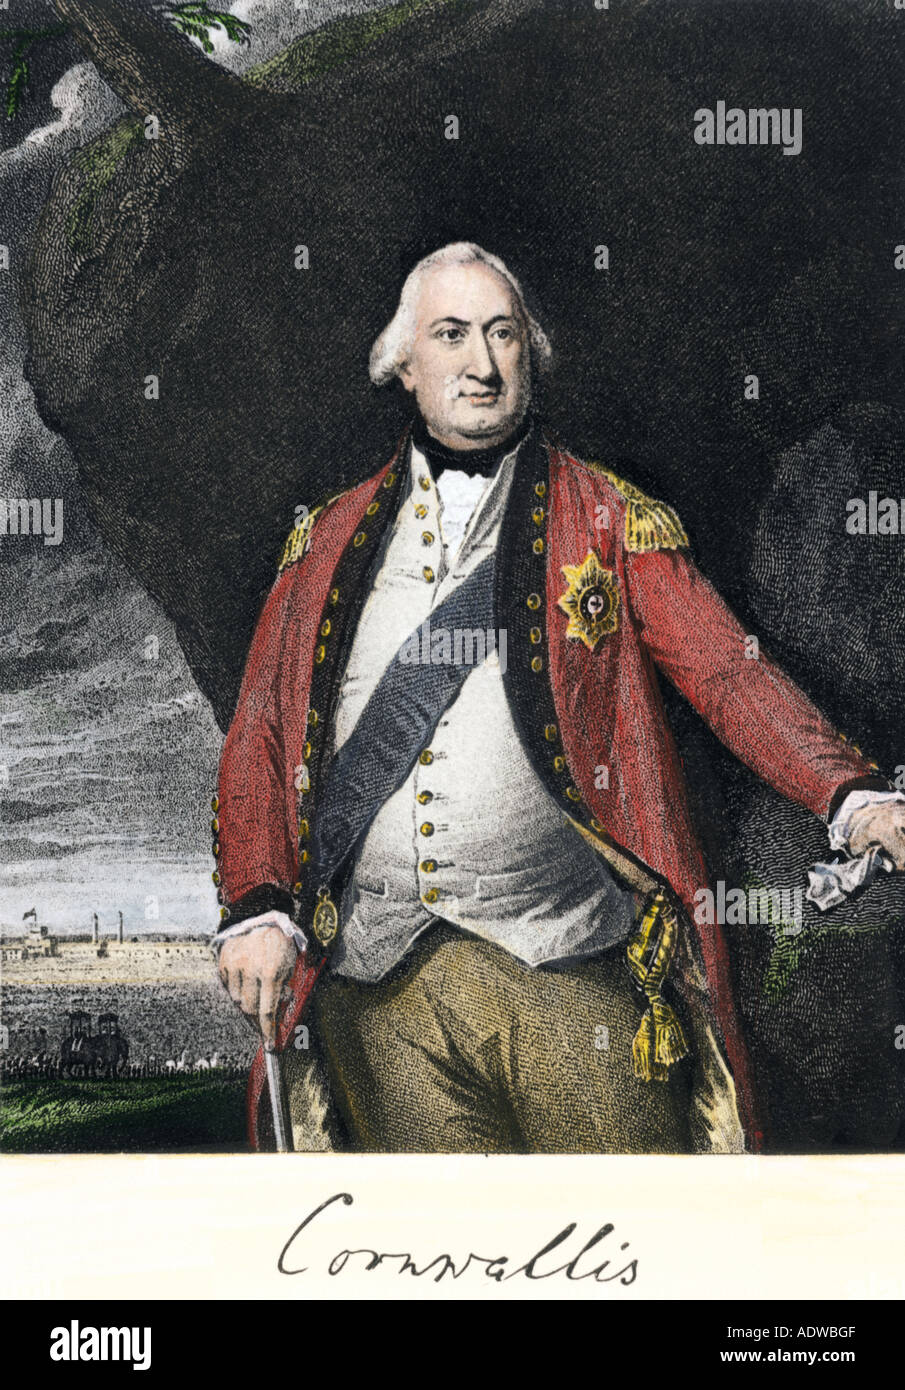 lord cornwallis stock photos lord cornwallis stock images alamy